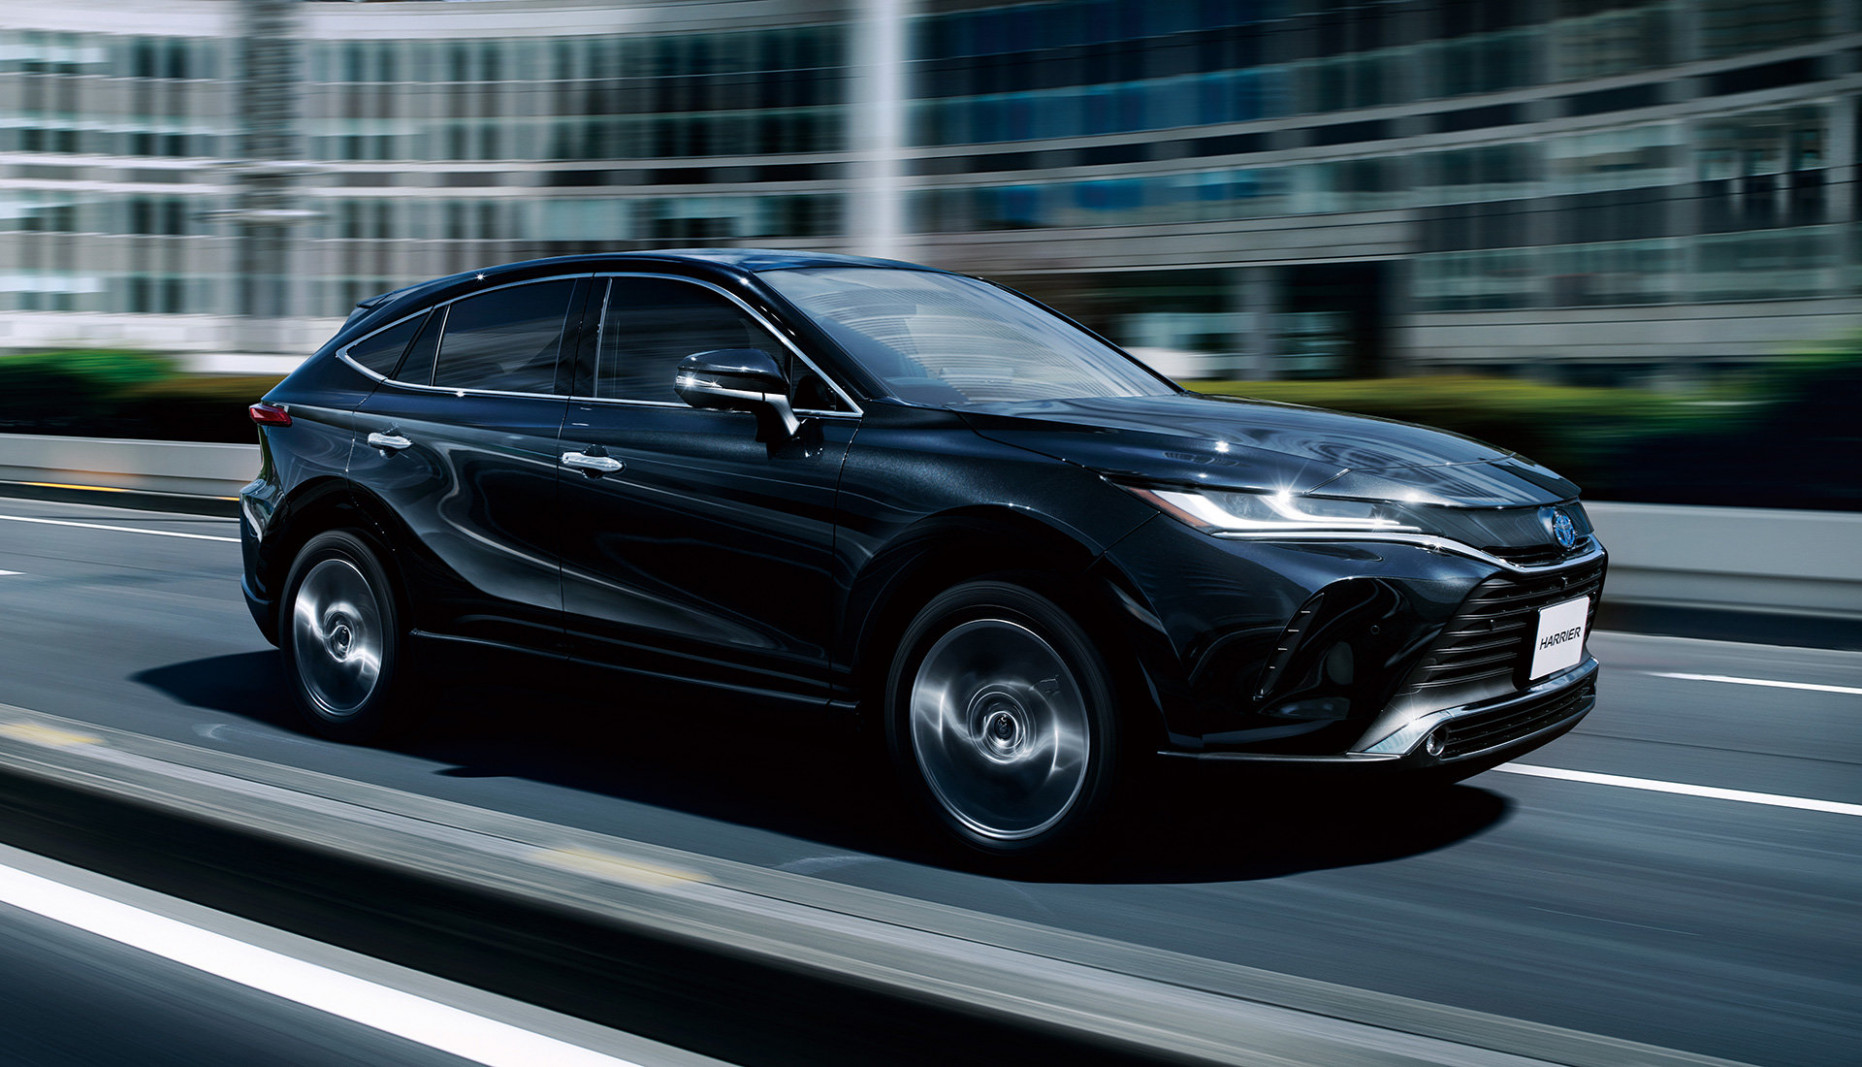 Redesign and Concept Toyota Harrier 2022